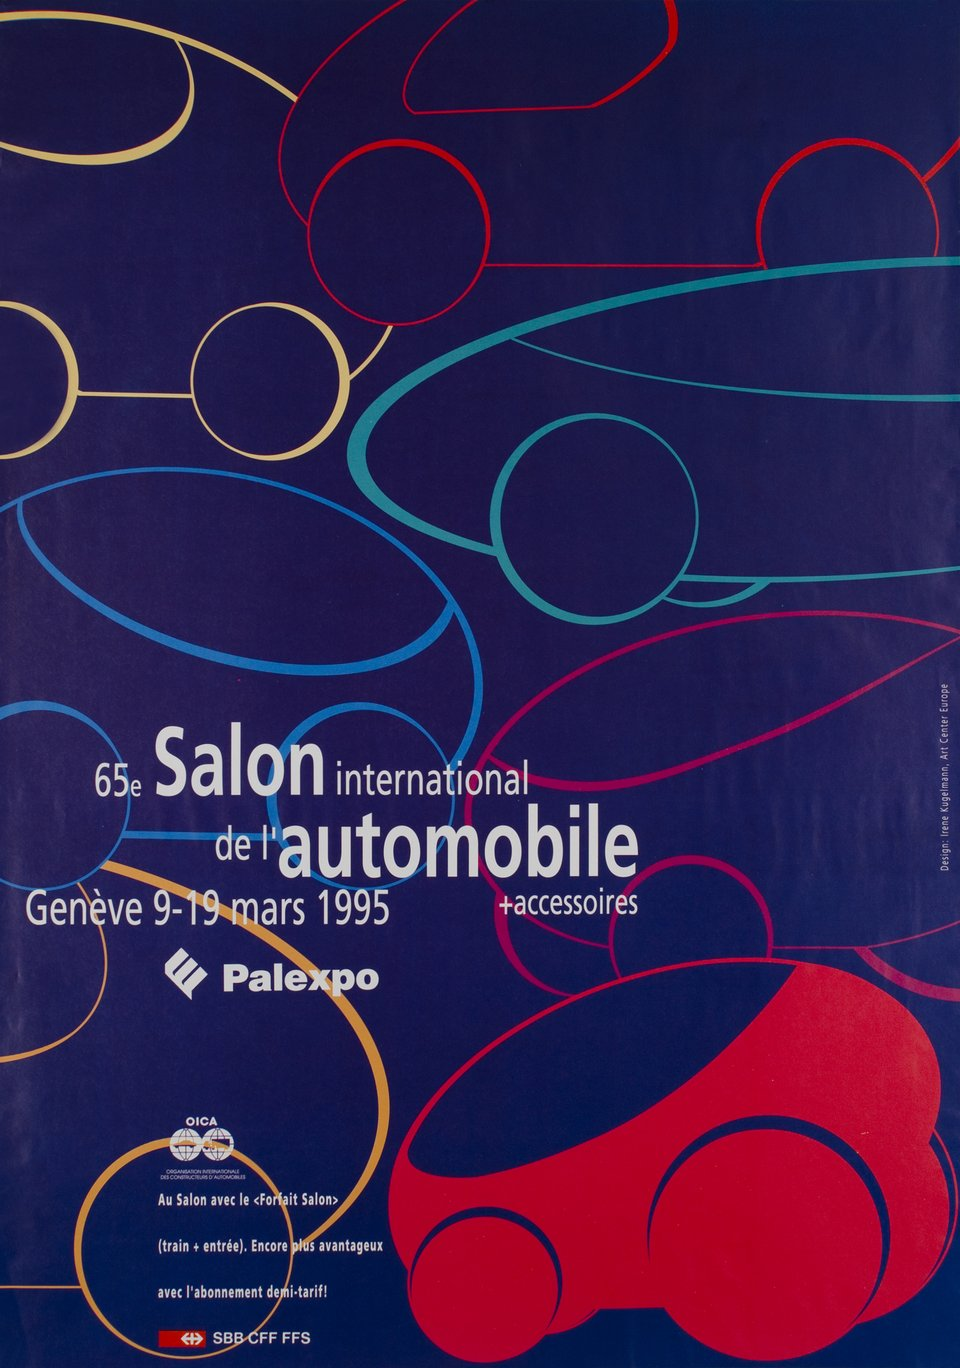 Genève, 65e Salon International de l'Automobile, Mars 1995 – Vintage poster – Irène KUGELMAN – 1995